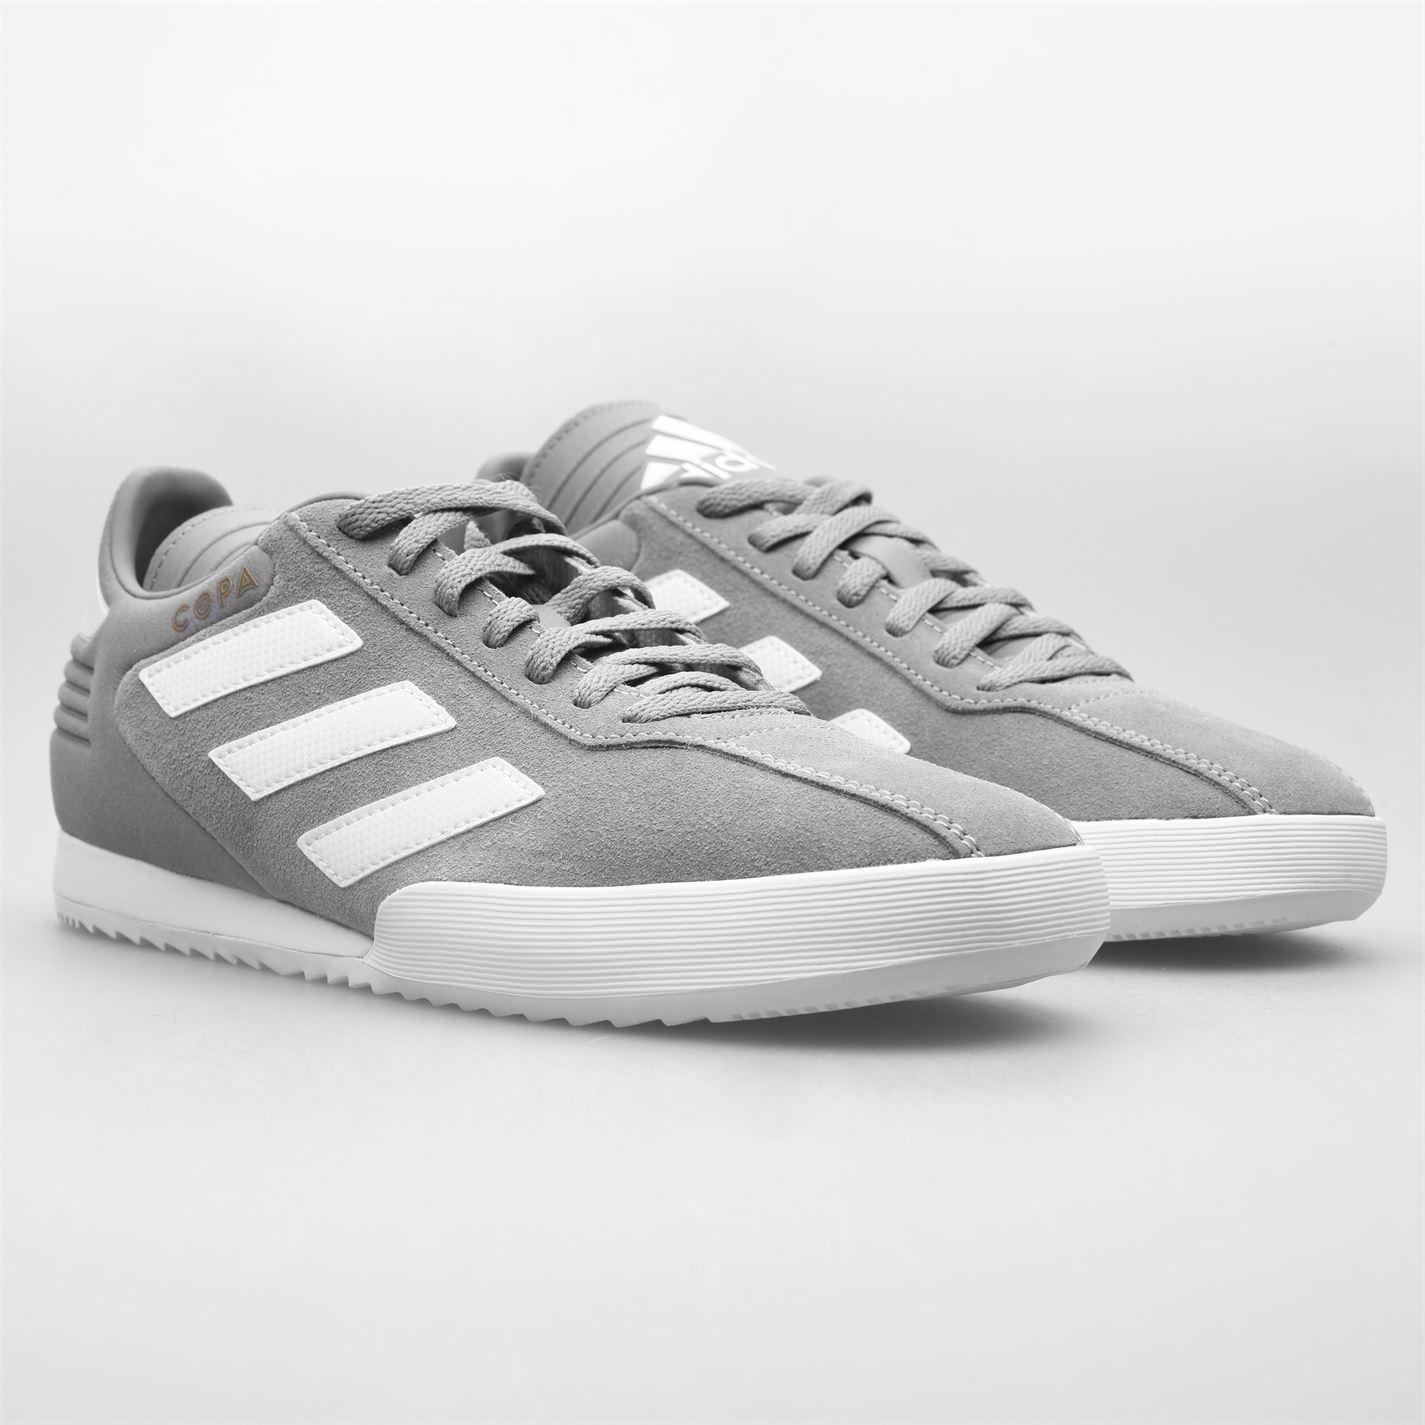 adidas Copa Super Suede Trainers in